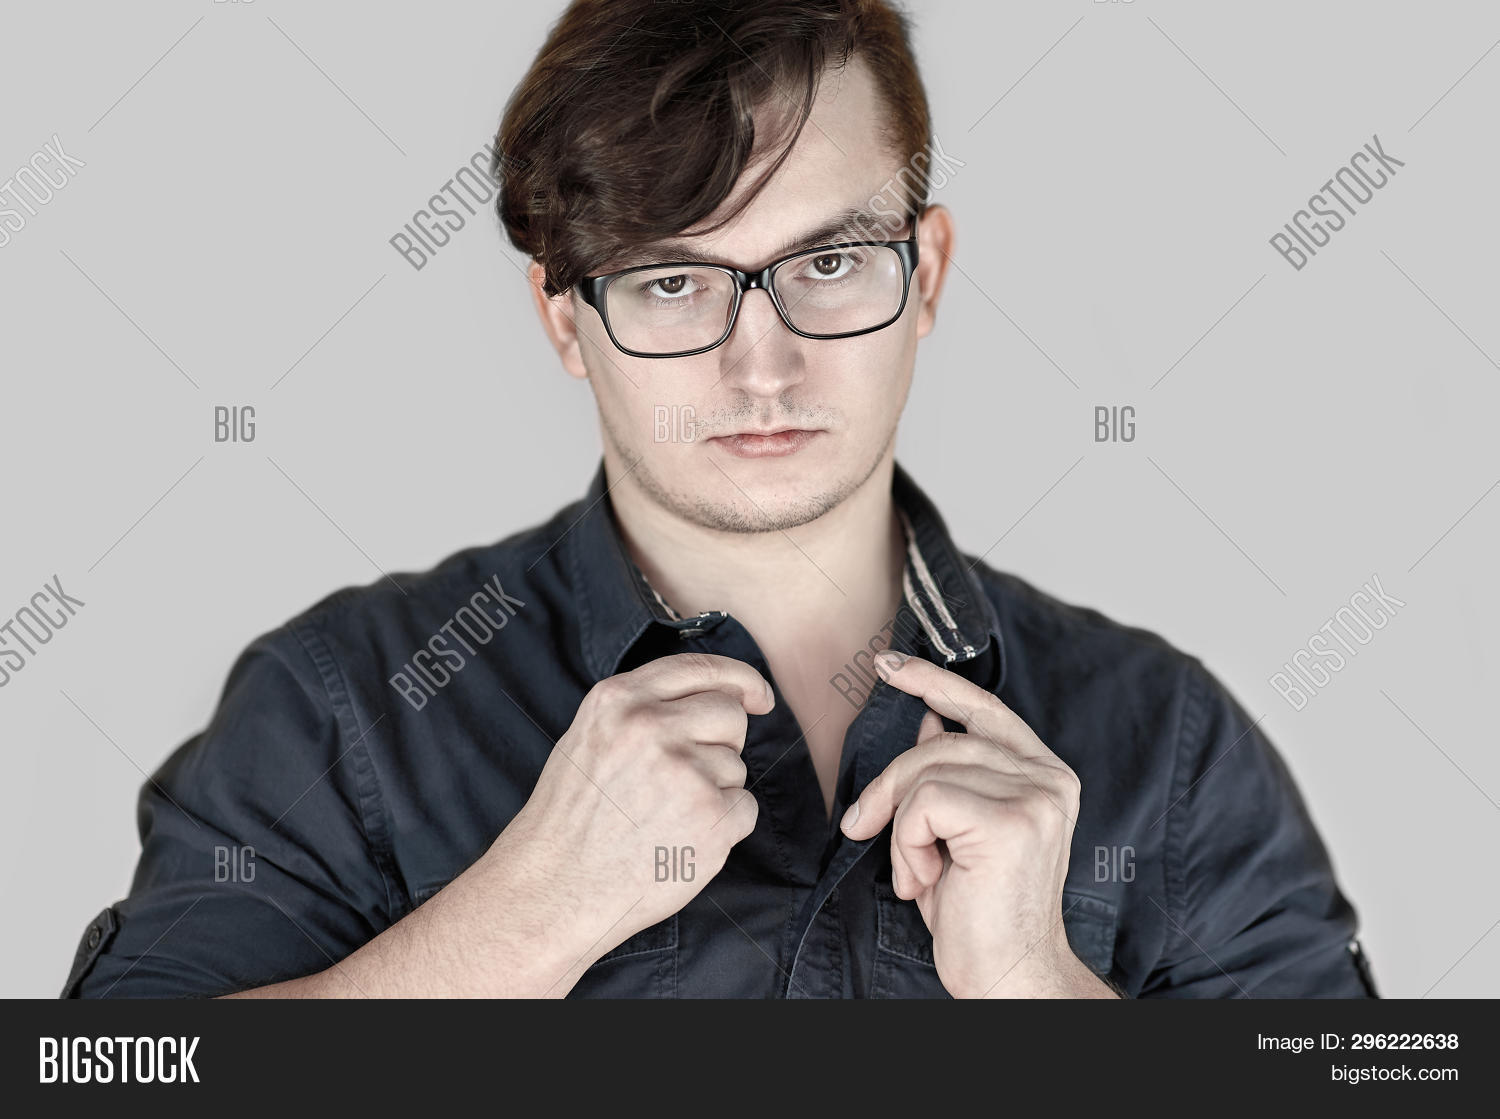 Young Handsome Image Photo Free Trial Bigstock